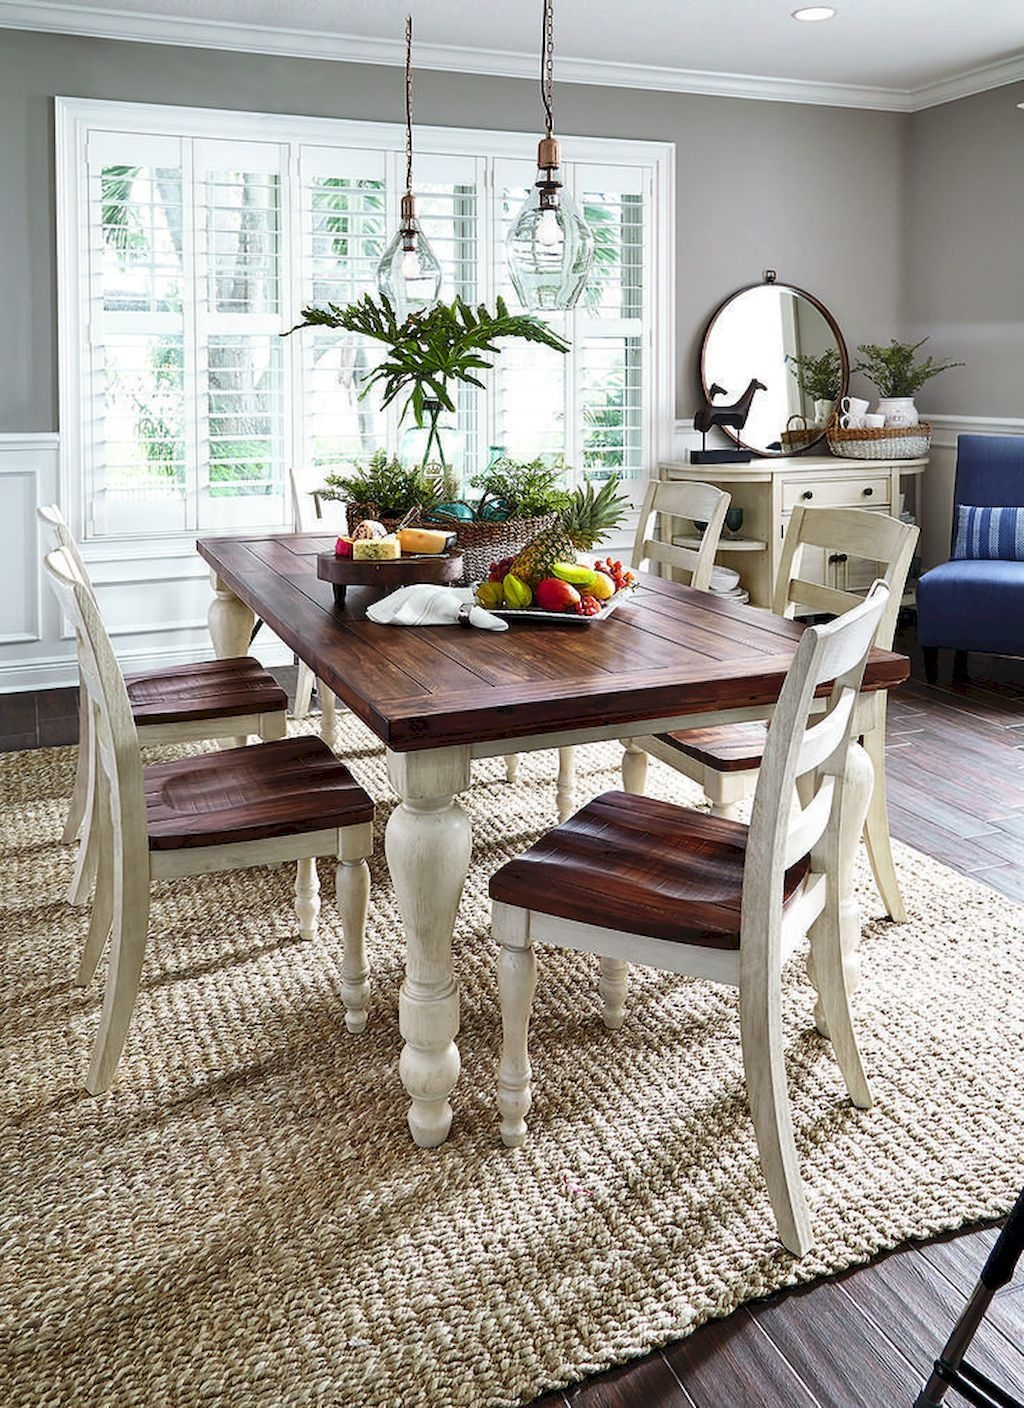 Popular Farmhouse Dining Room Design Ideas Trend 2019 14